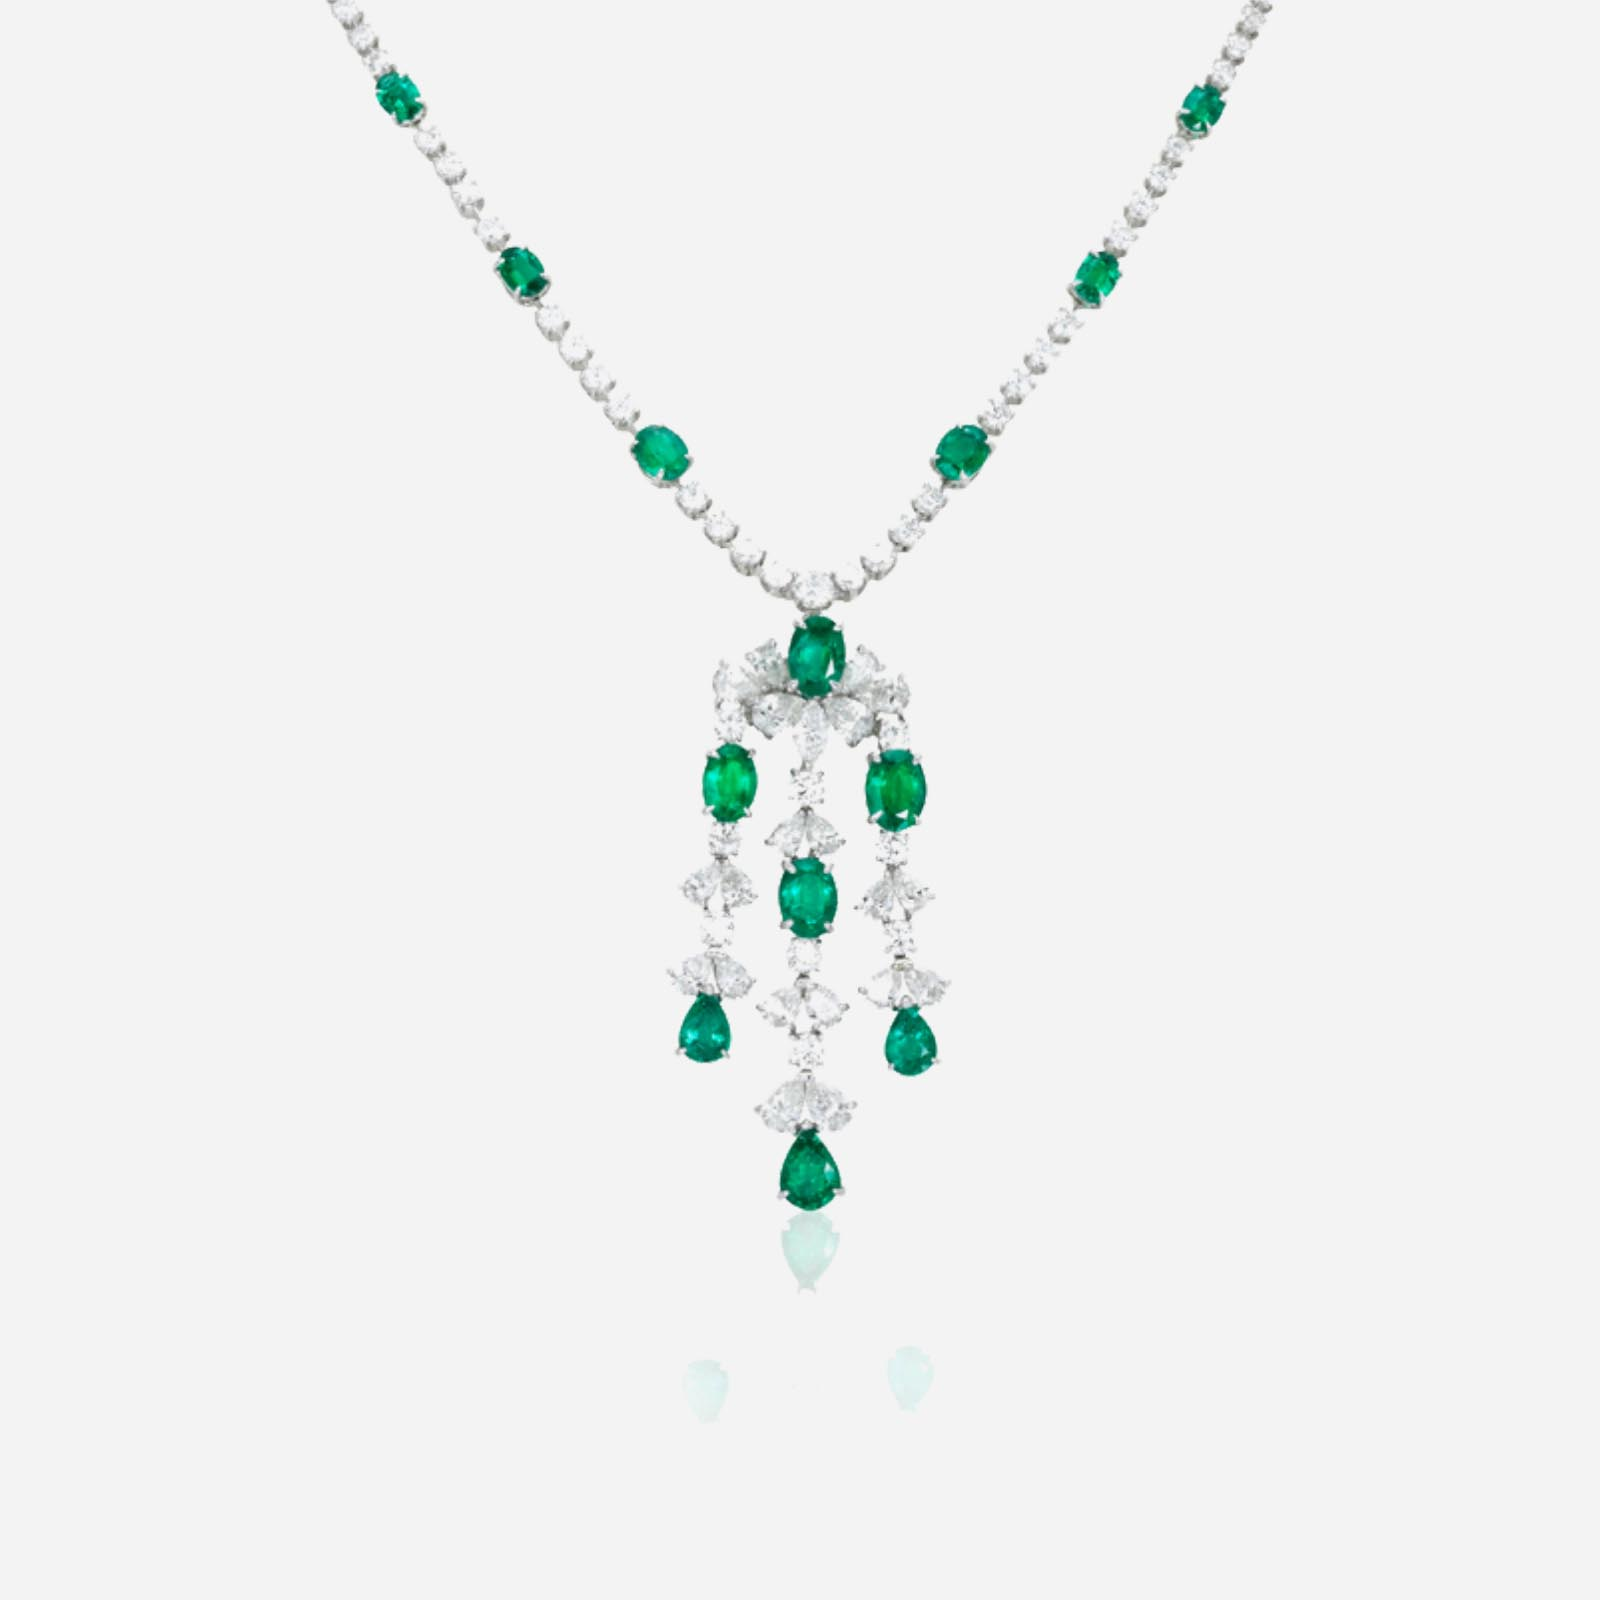 Extremely Emerald Necklace